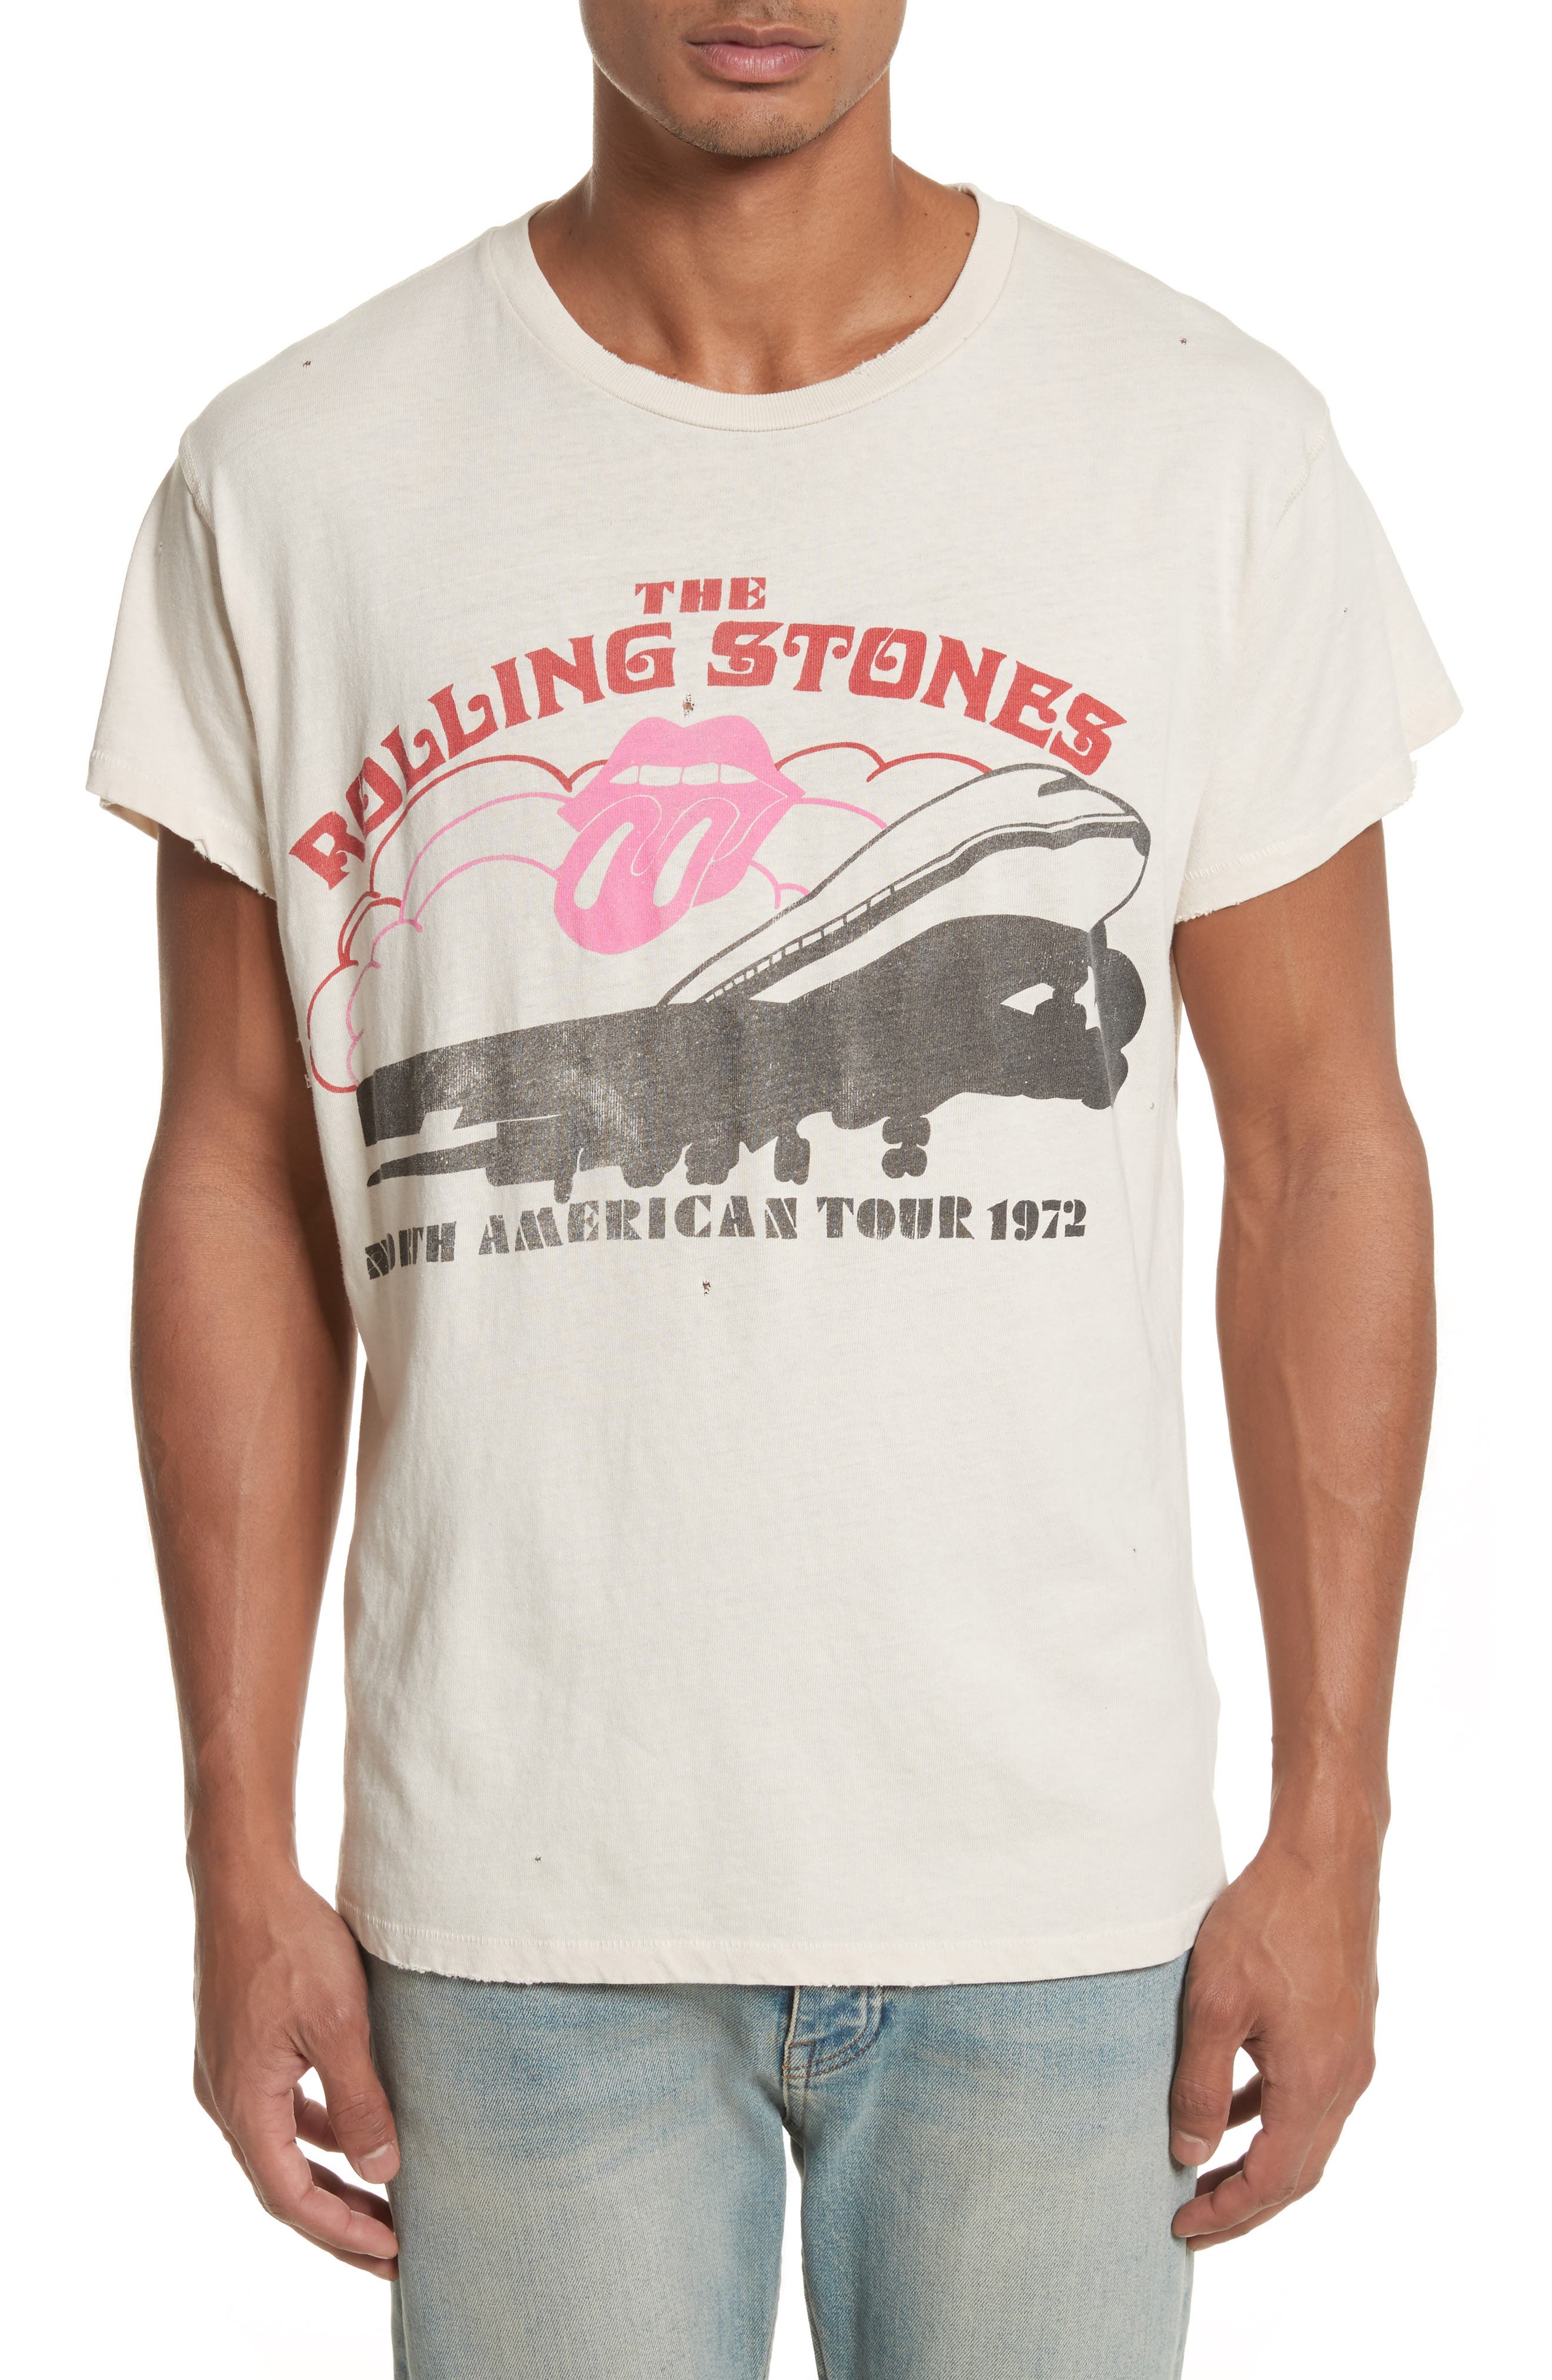 Main Image - Madeworn The Rolling Stones North American Tour 1972 Graphic T-Shirt